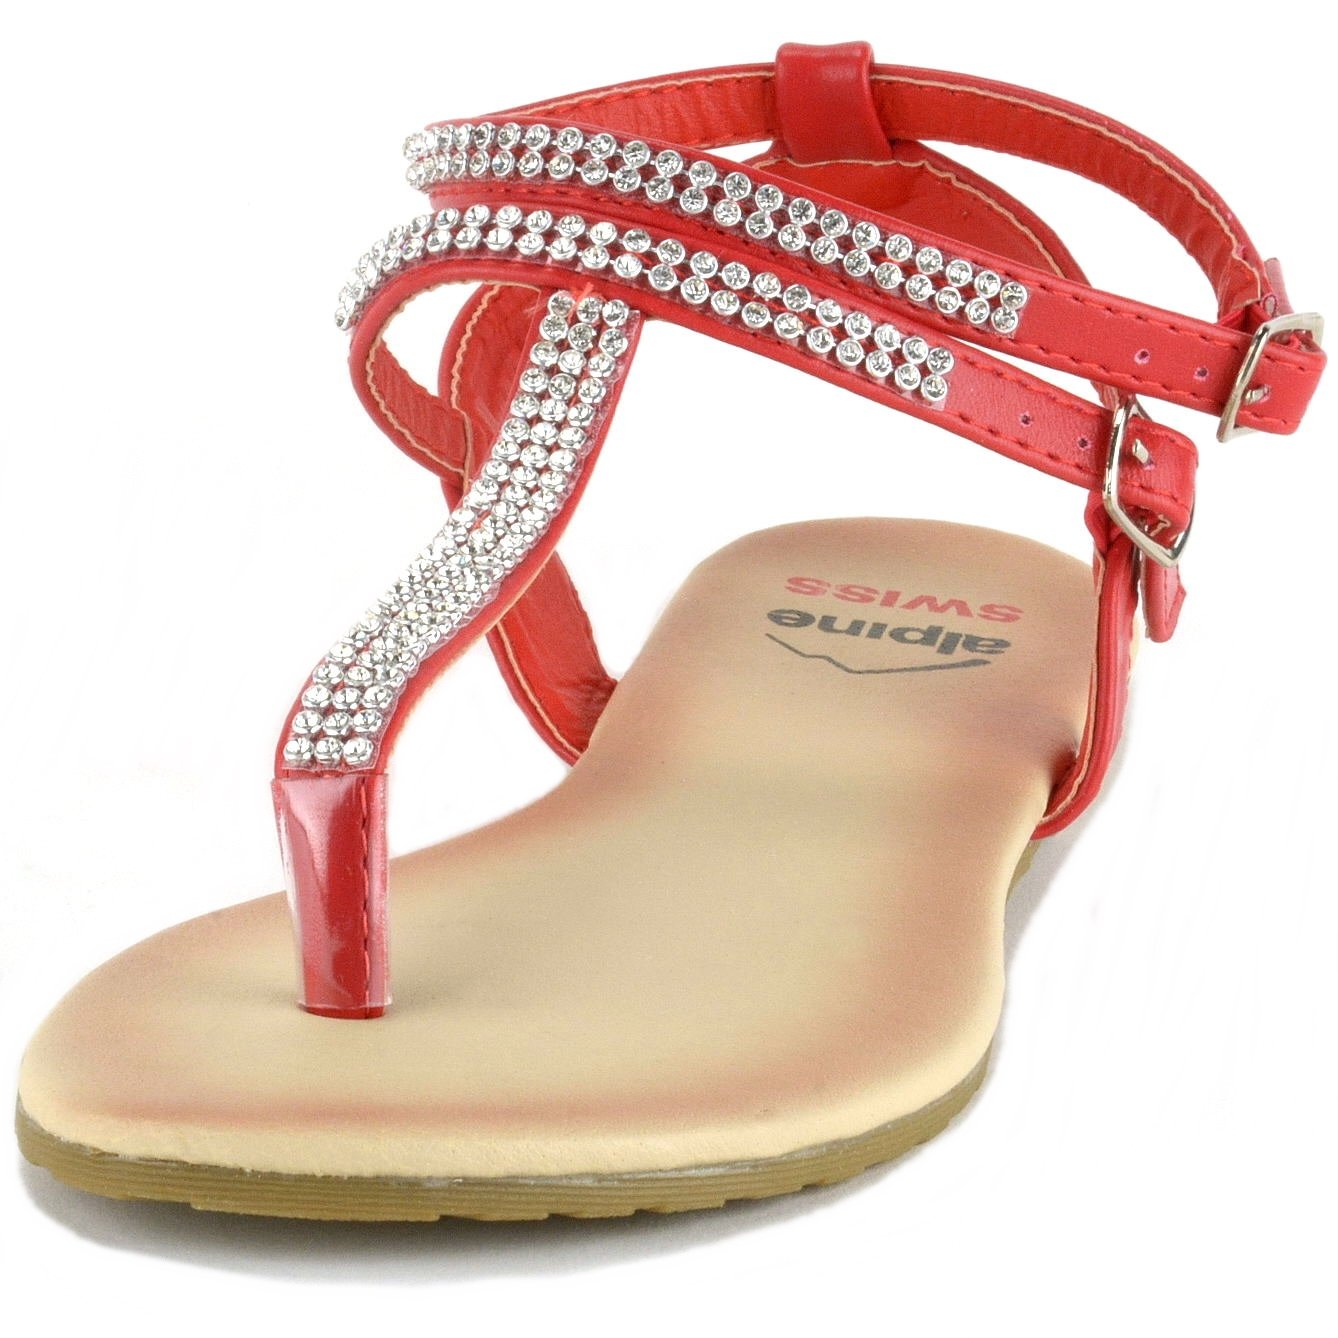 7697c79e78575a alpine swiss Womens Slingback T-Strap Rhinestone Ankle Strap Thong Sandals  By Alpine Swiss larger image